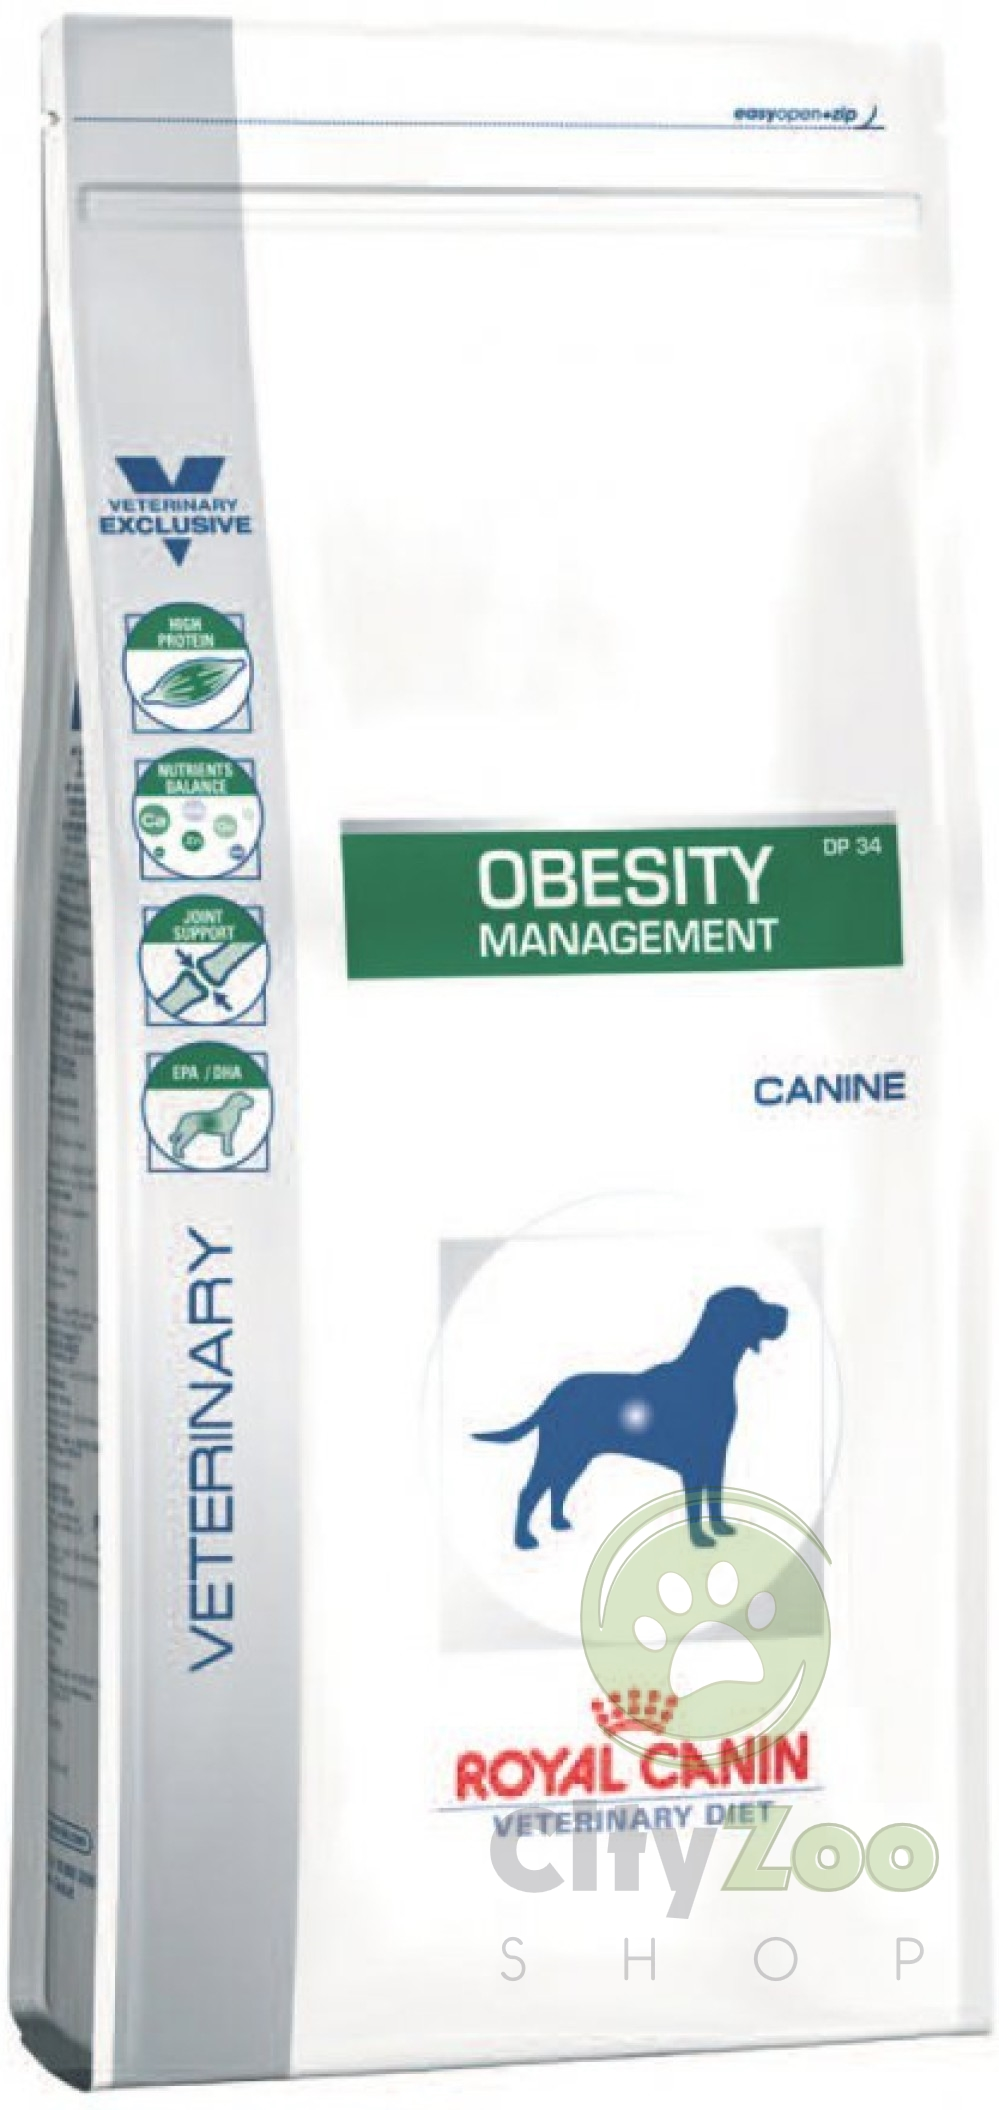 zoo/Royal_Canin_Obesity_Canine